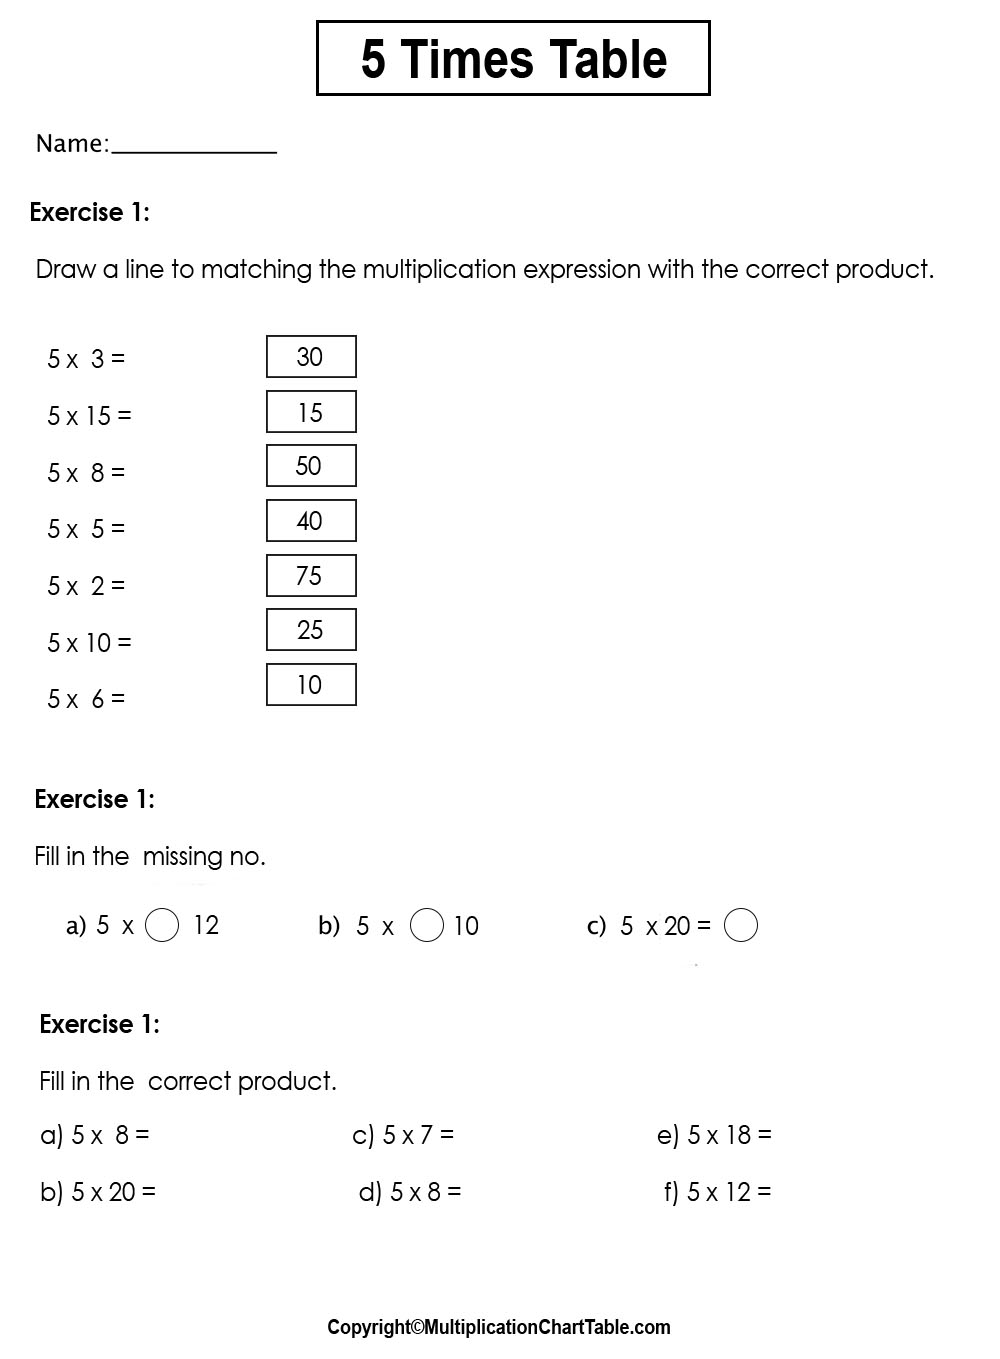 5 times table worksheets